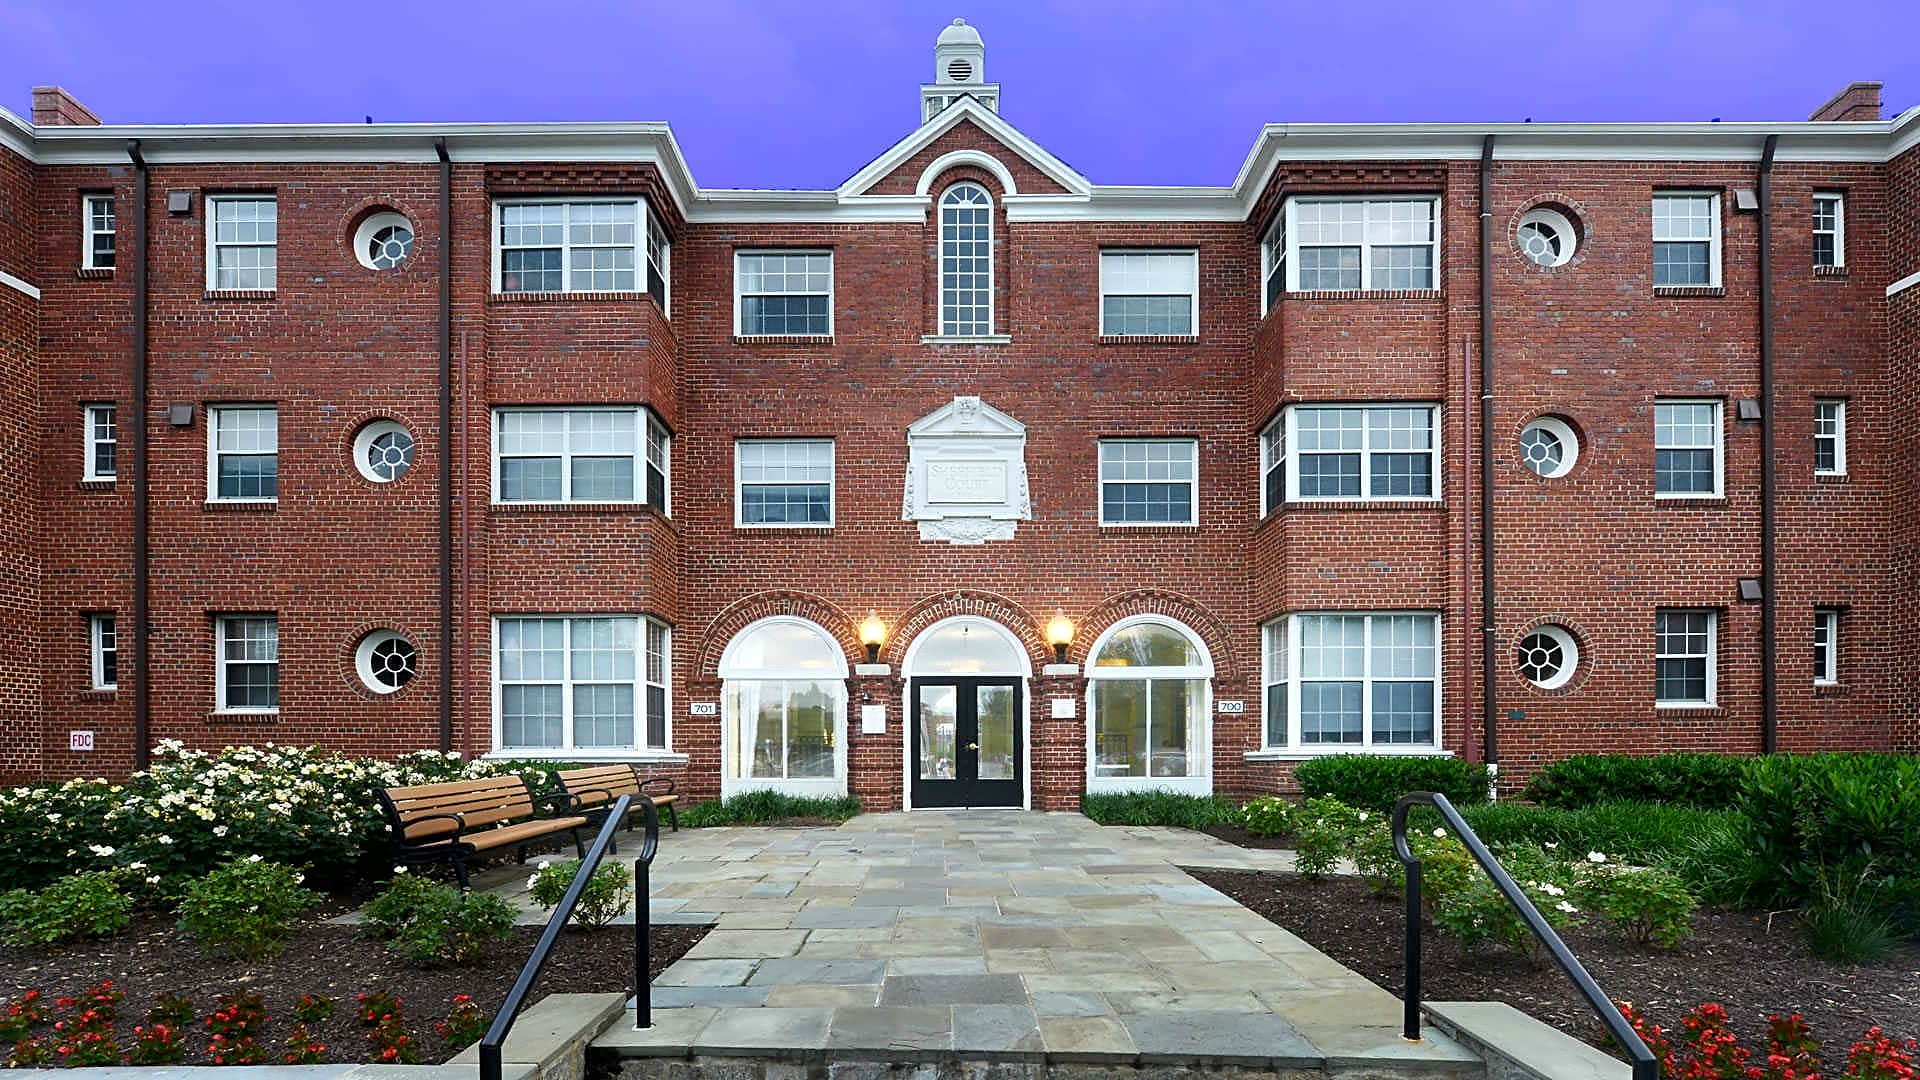 Sheffield Court Apartments - Arlington, VA 22201